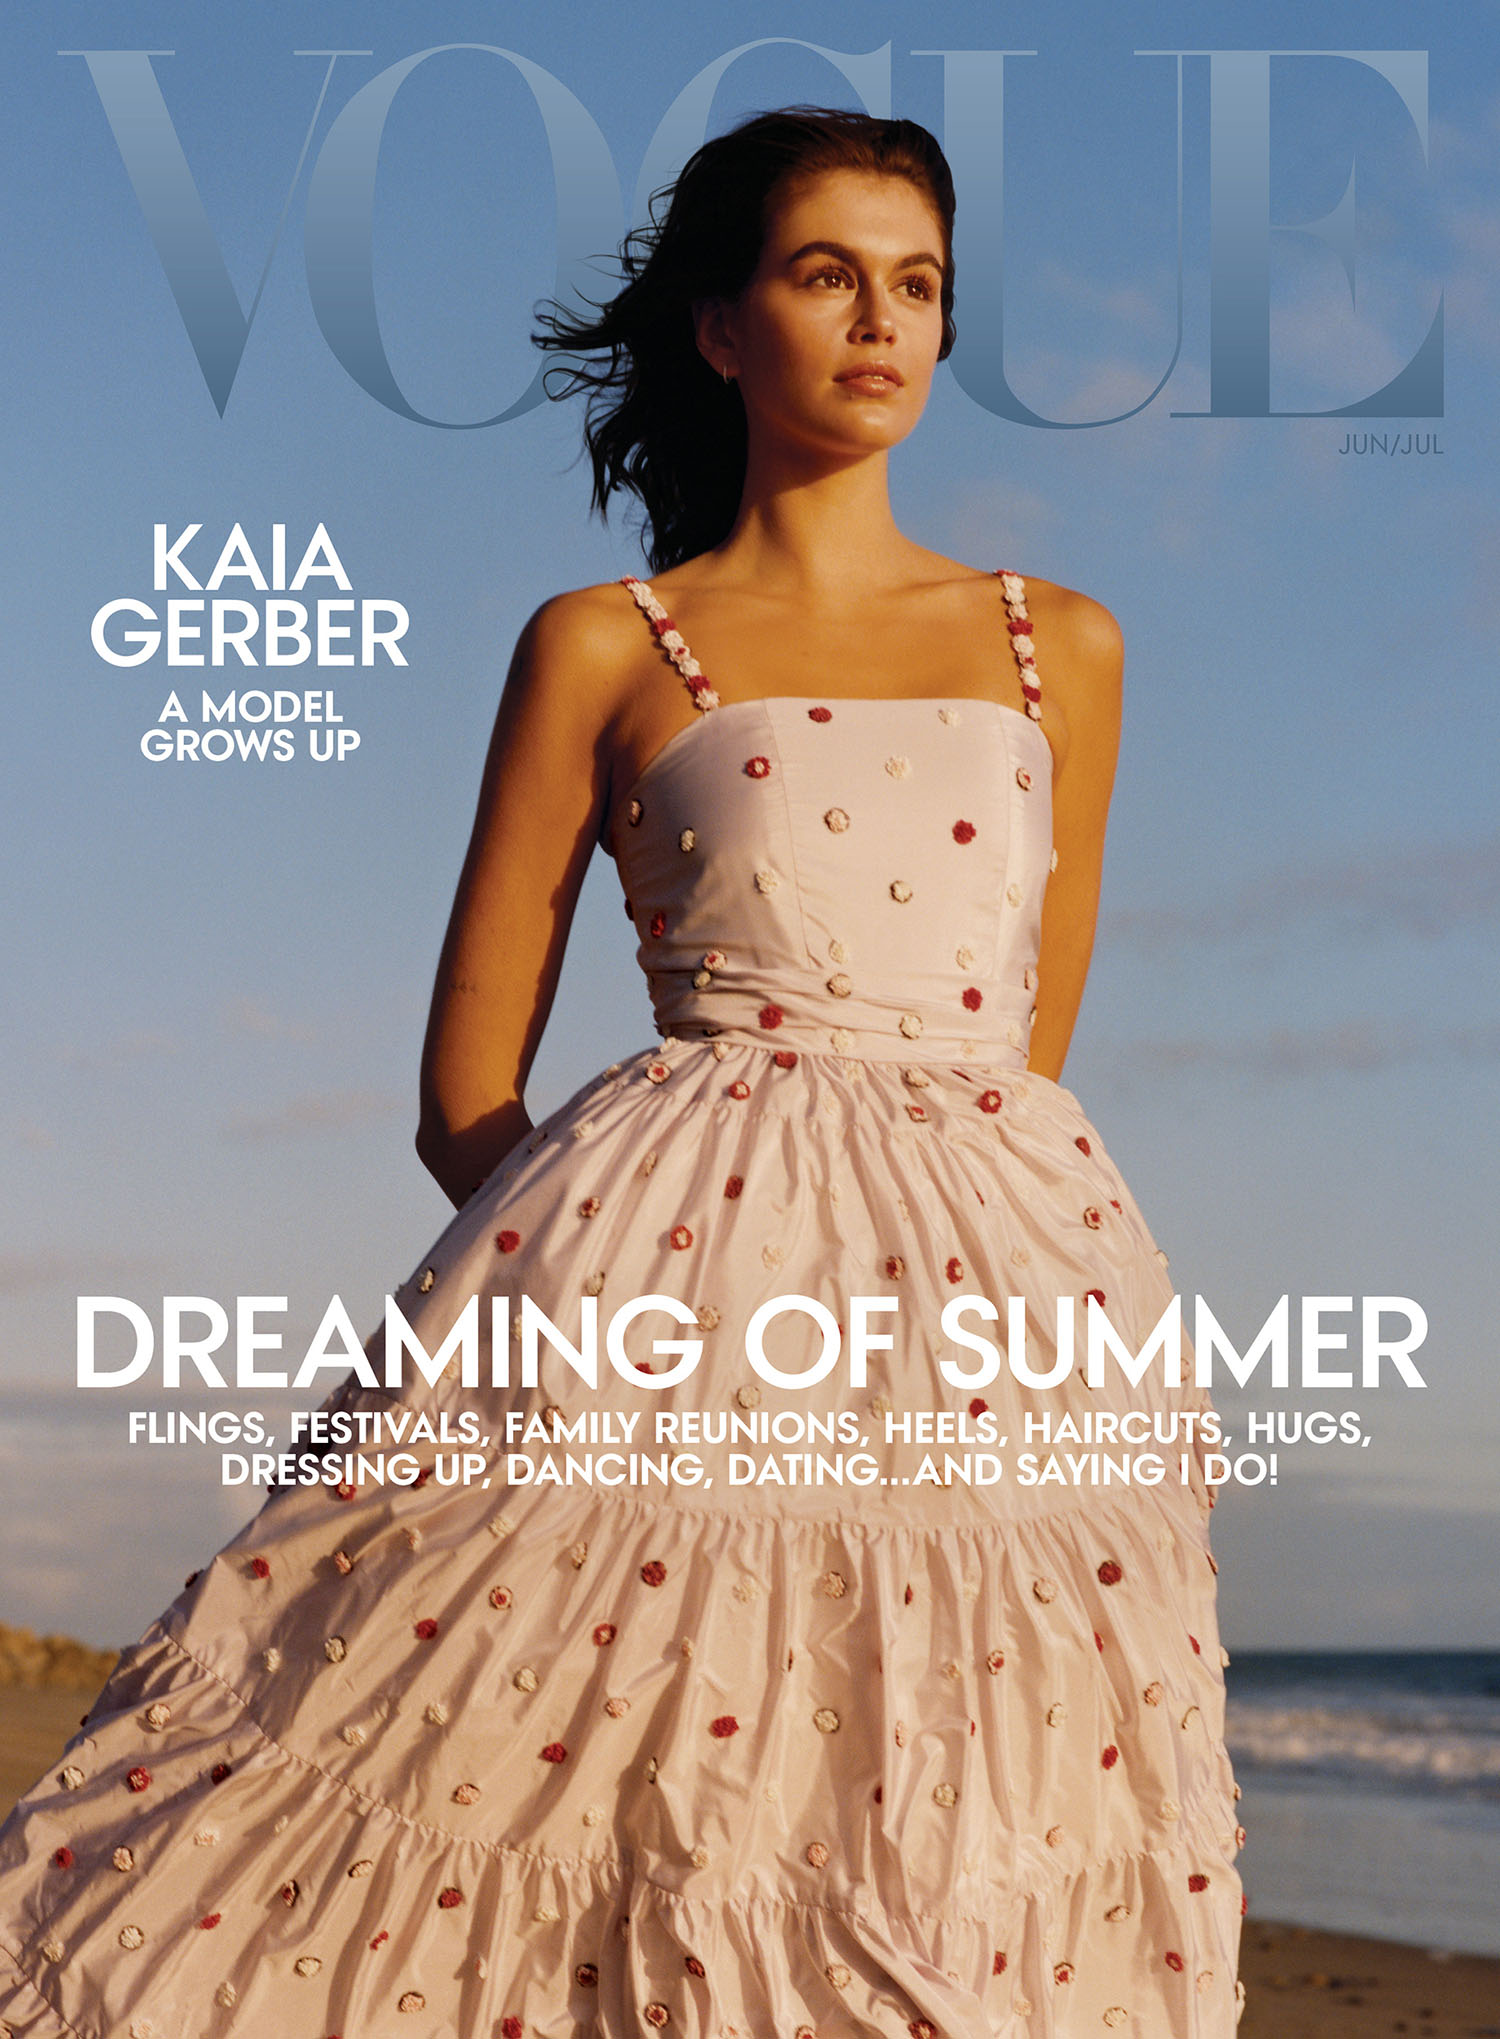 Kaia Gerber covers Vogue US June July 2021 by Colin Dodgson